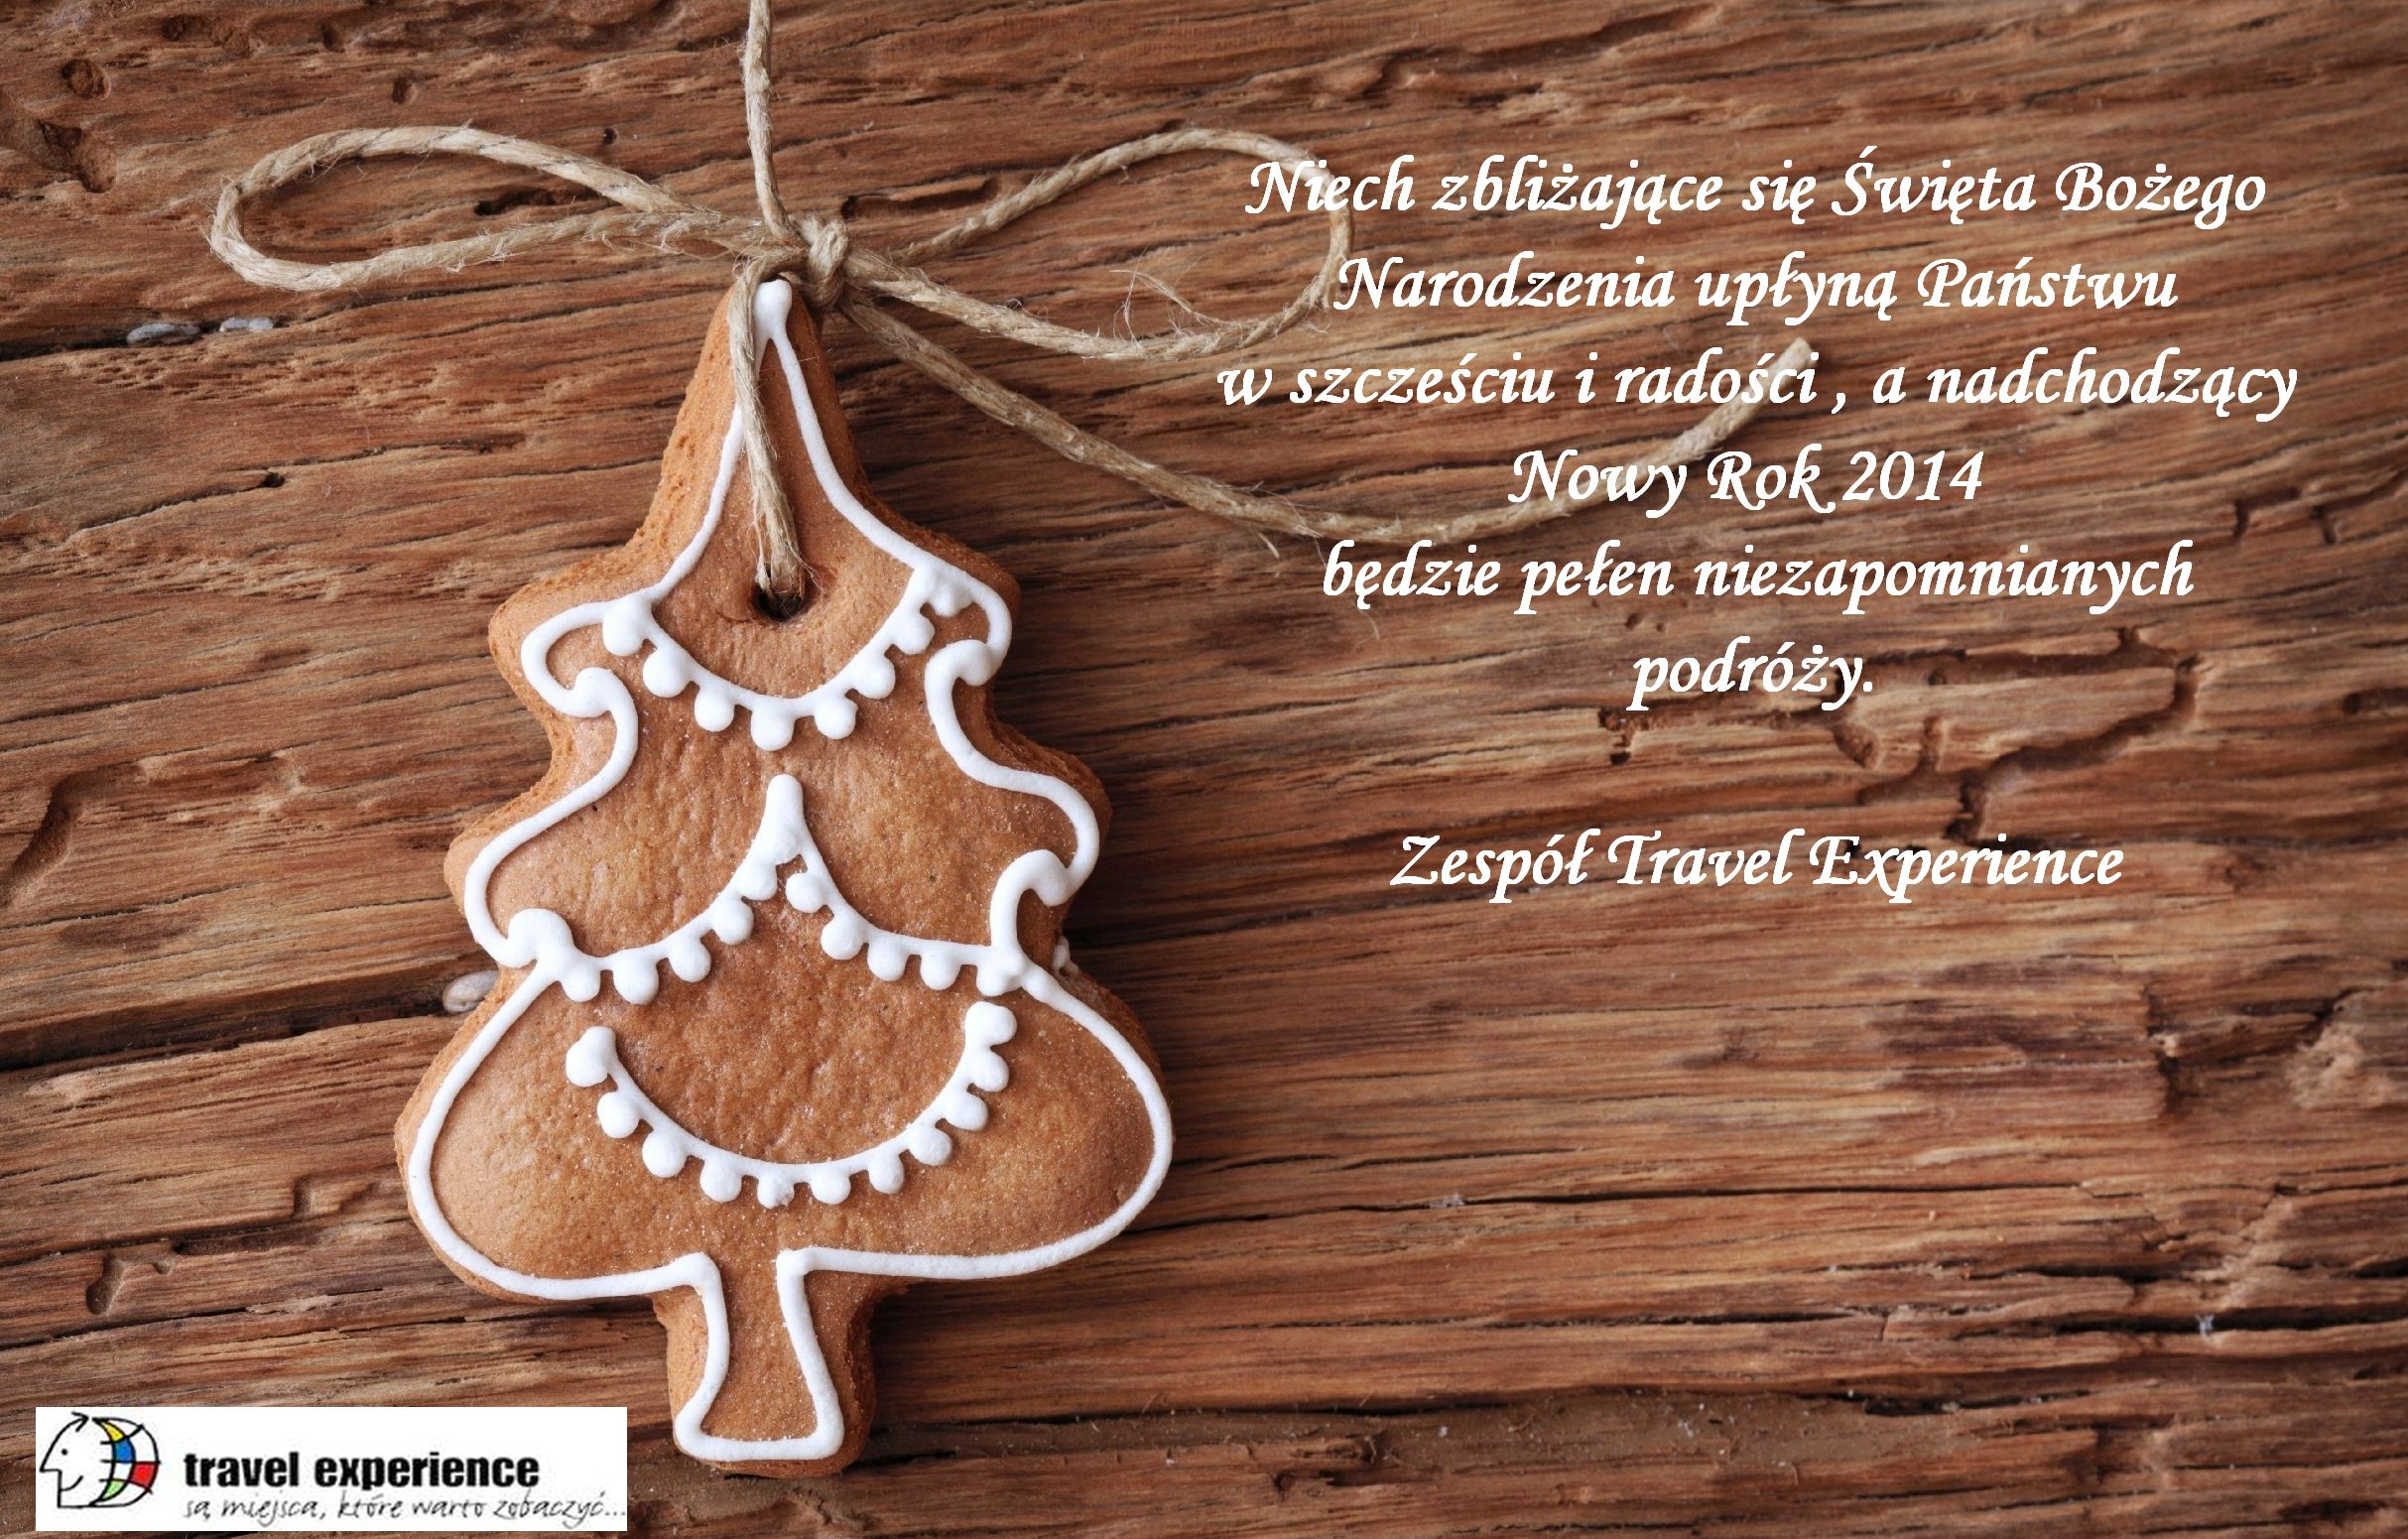 Marry Christmas and Happy New Year :)